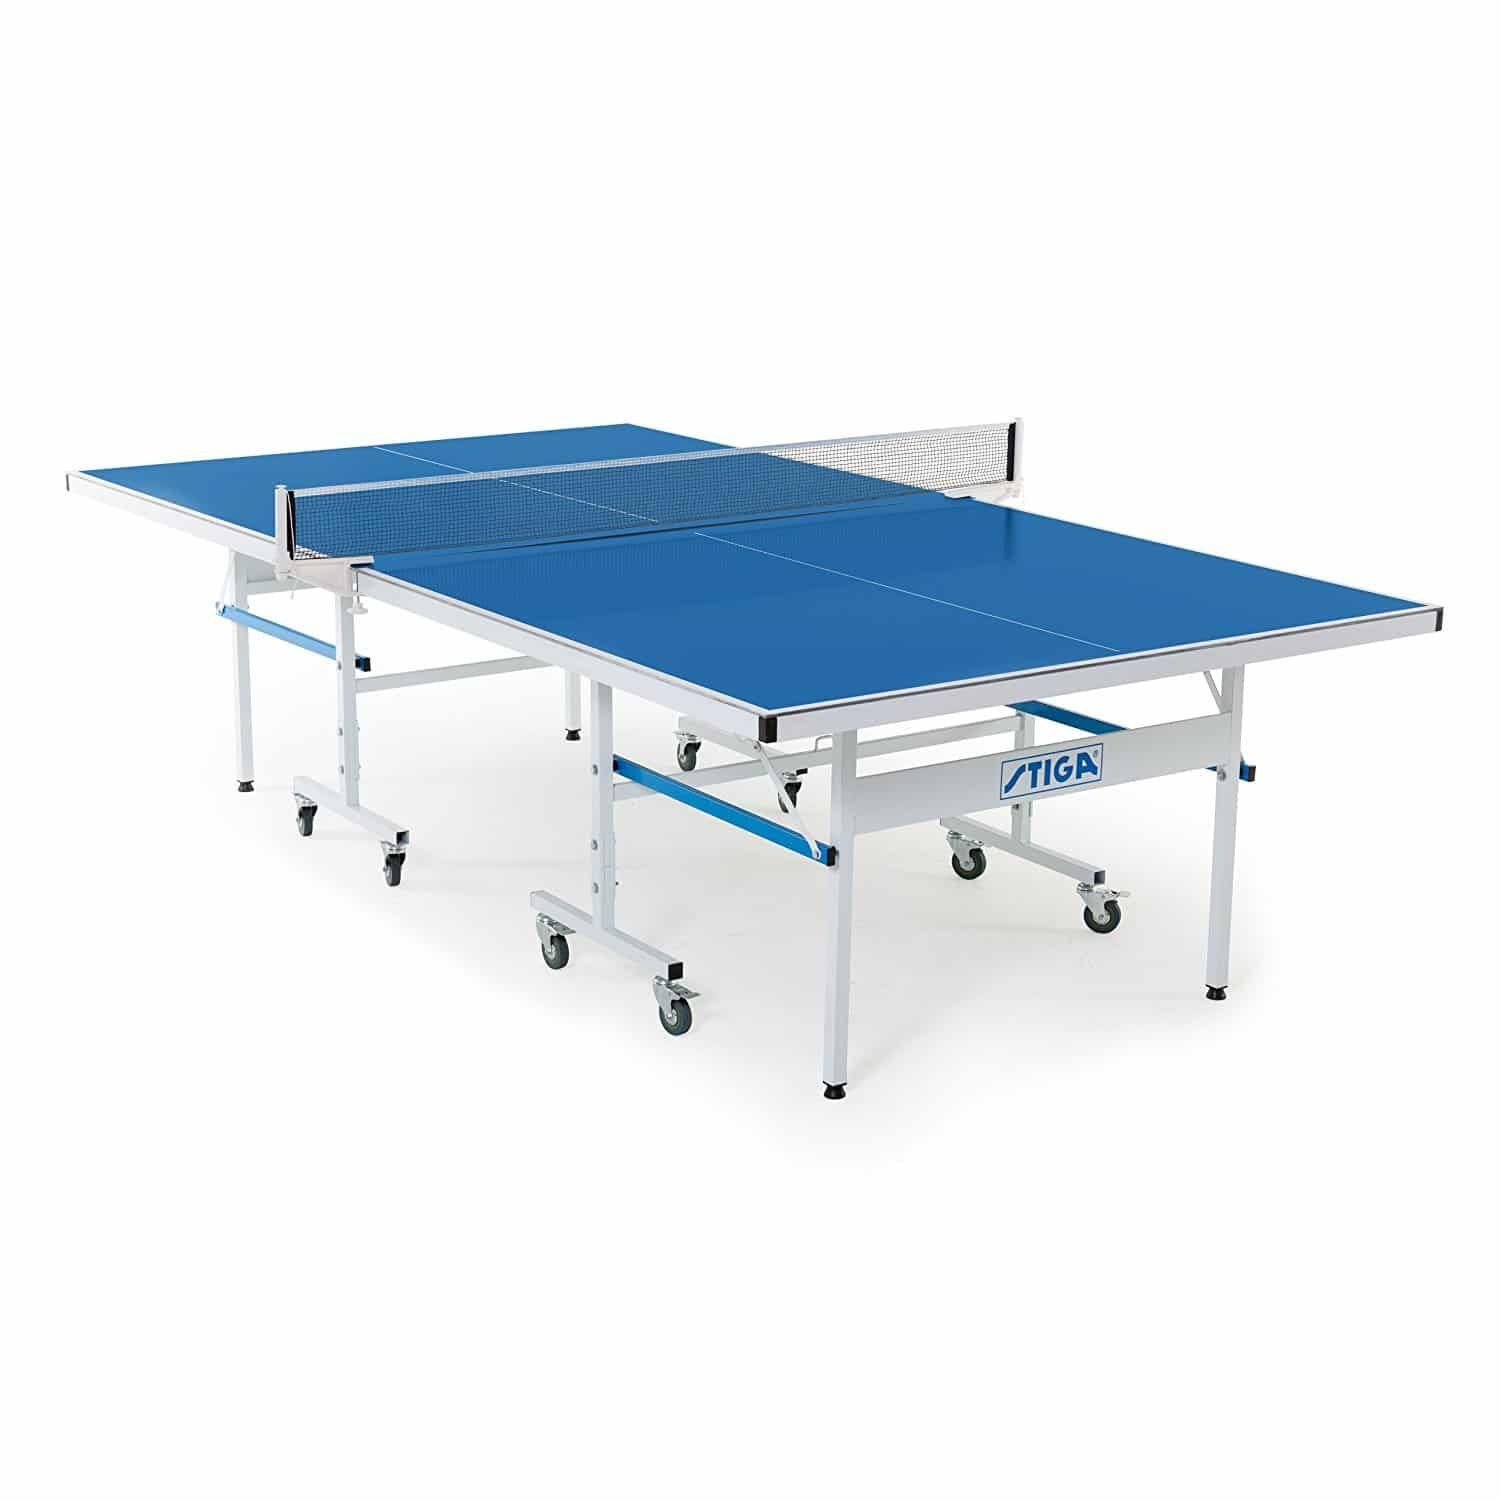 Top 10 Best Ping Pong Tables In 2021 Buyer S Guides Complete Review Hqreview Outdoor Ping Pong Table Outdoor Table Tennis Table Ping Pong Table Indoor outdoor ping pong table